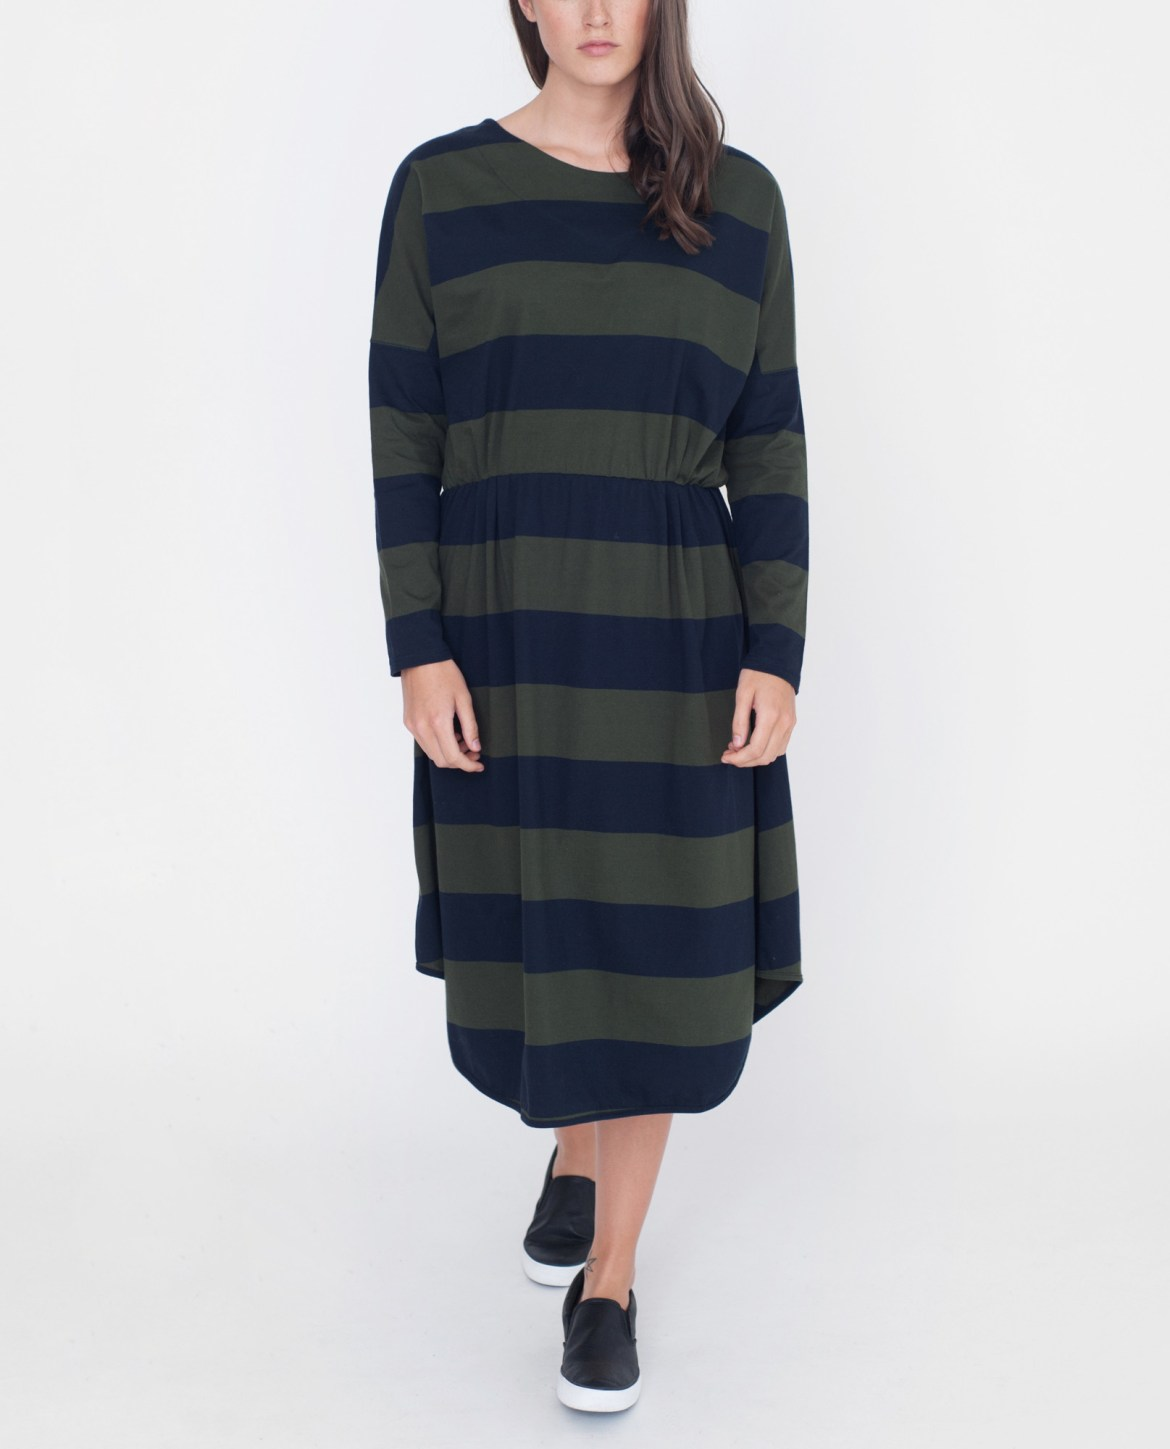 sarah-beaumont-organic-organic-cotton-dress-in-navy-and-green-stripe-1